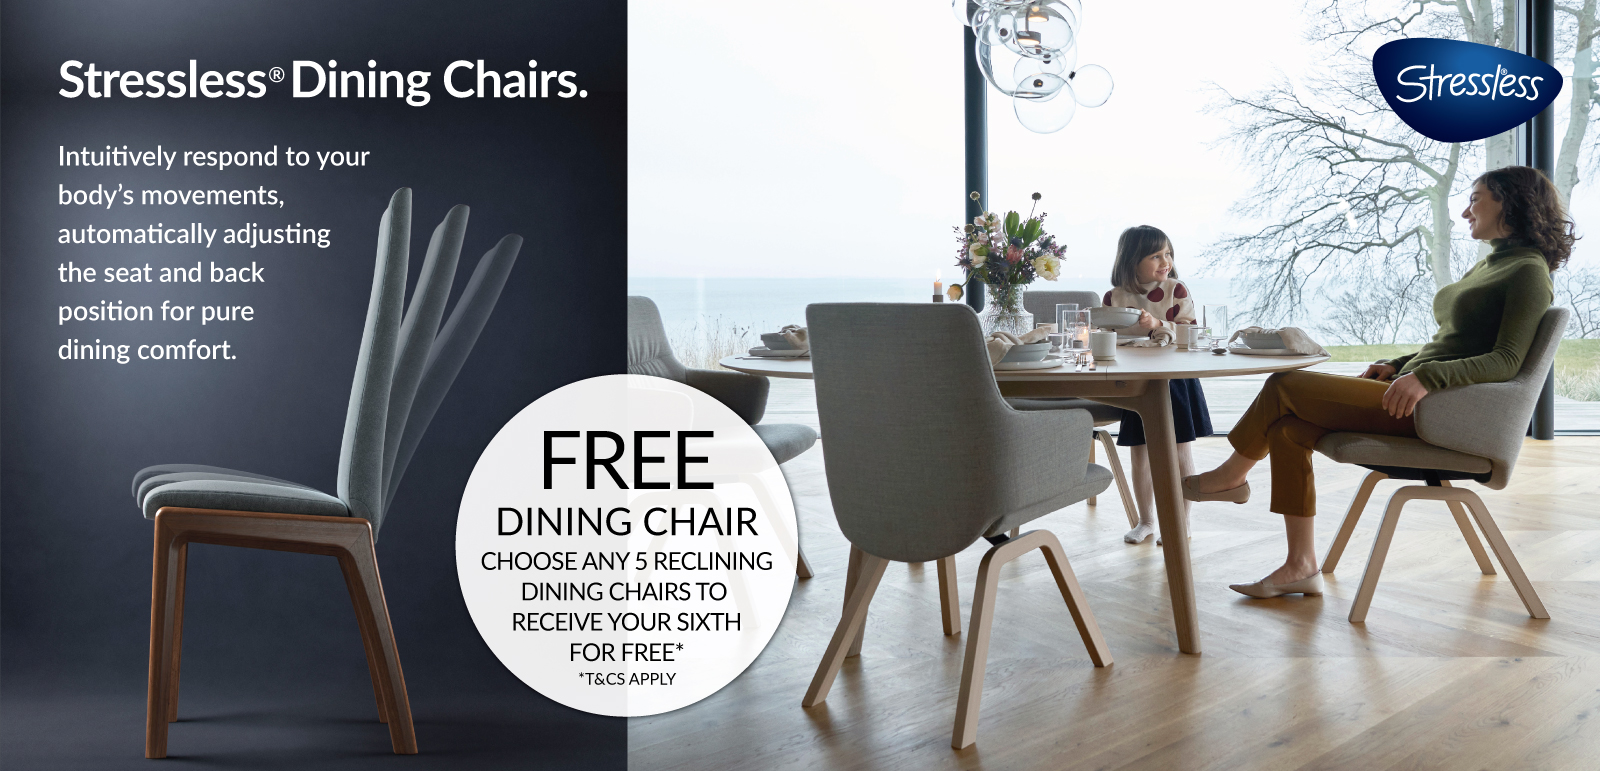 buy5-1free-chairs-promo